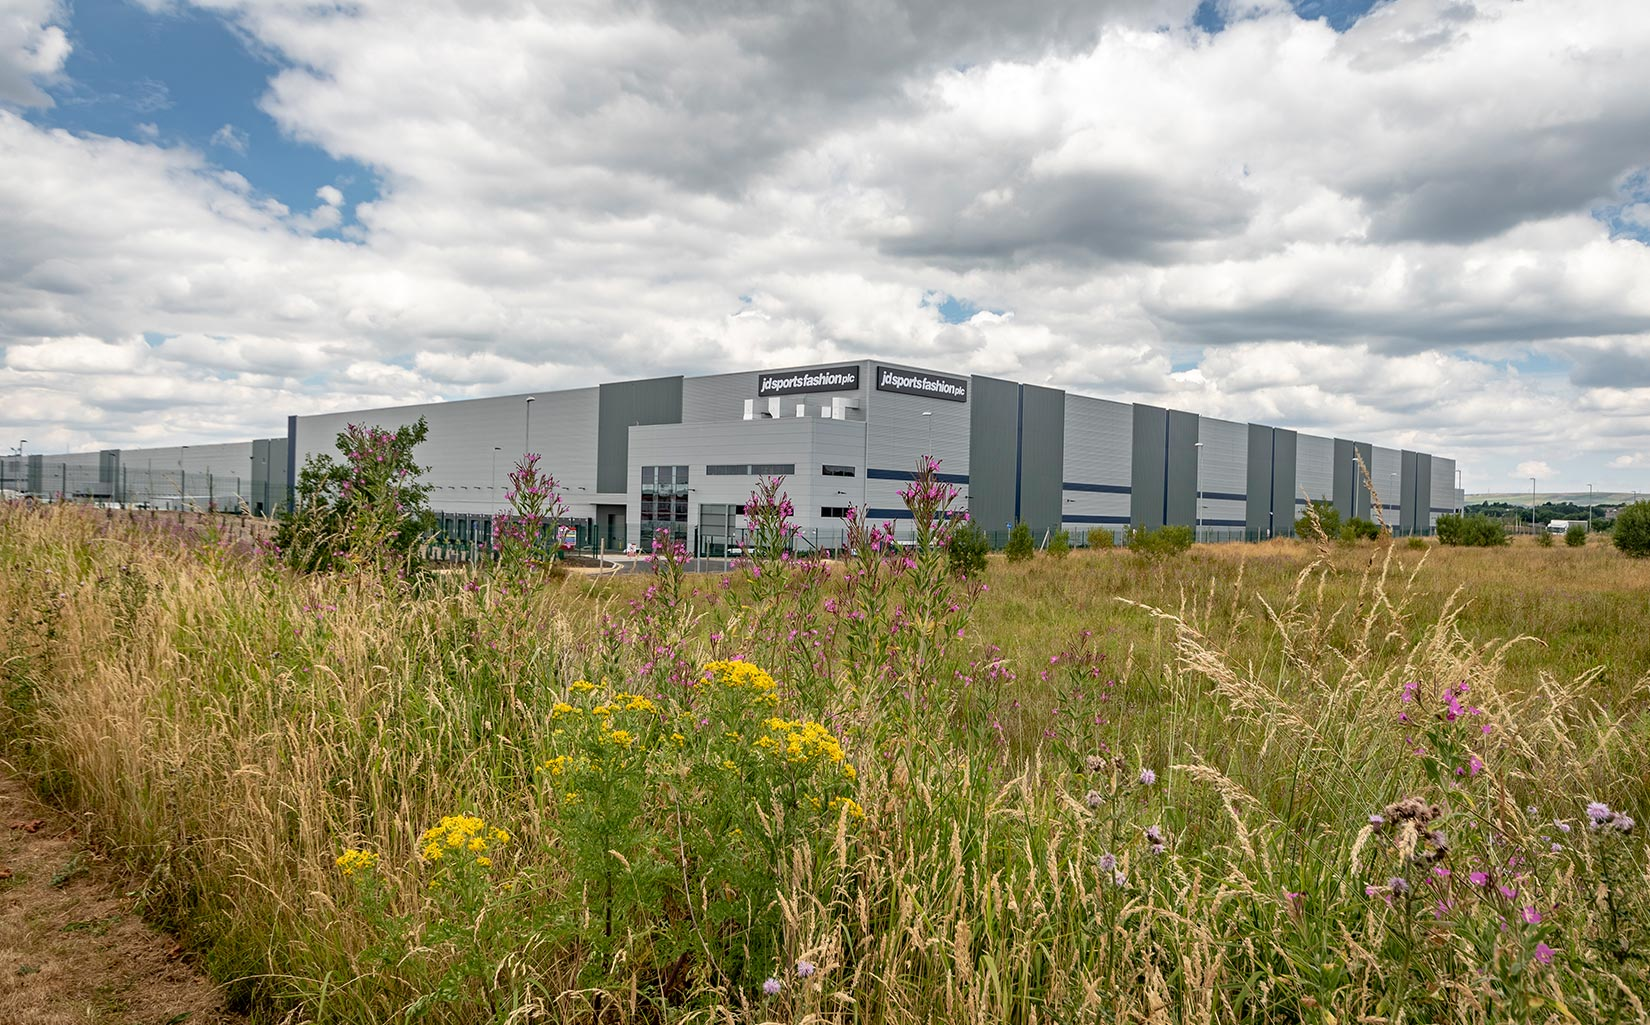 Kingsway Business Park, Milnrow, Rochdale, JD Sports Fasion Landscaping